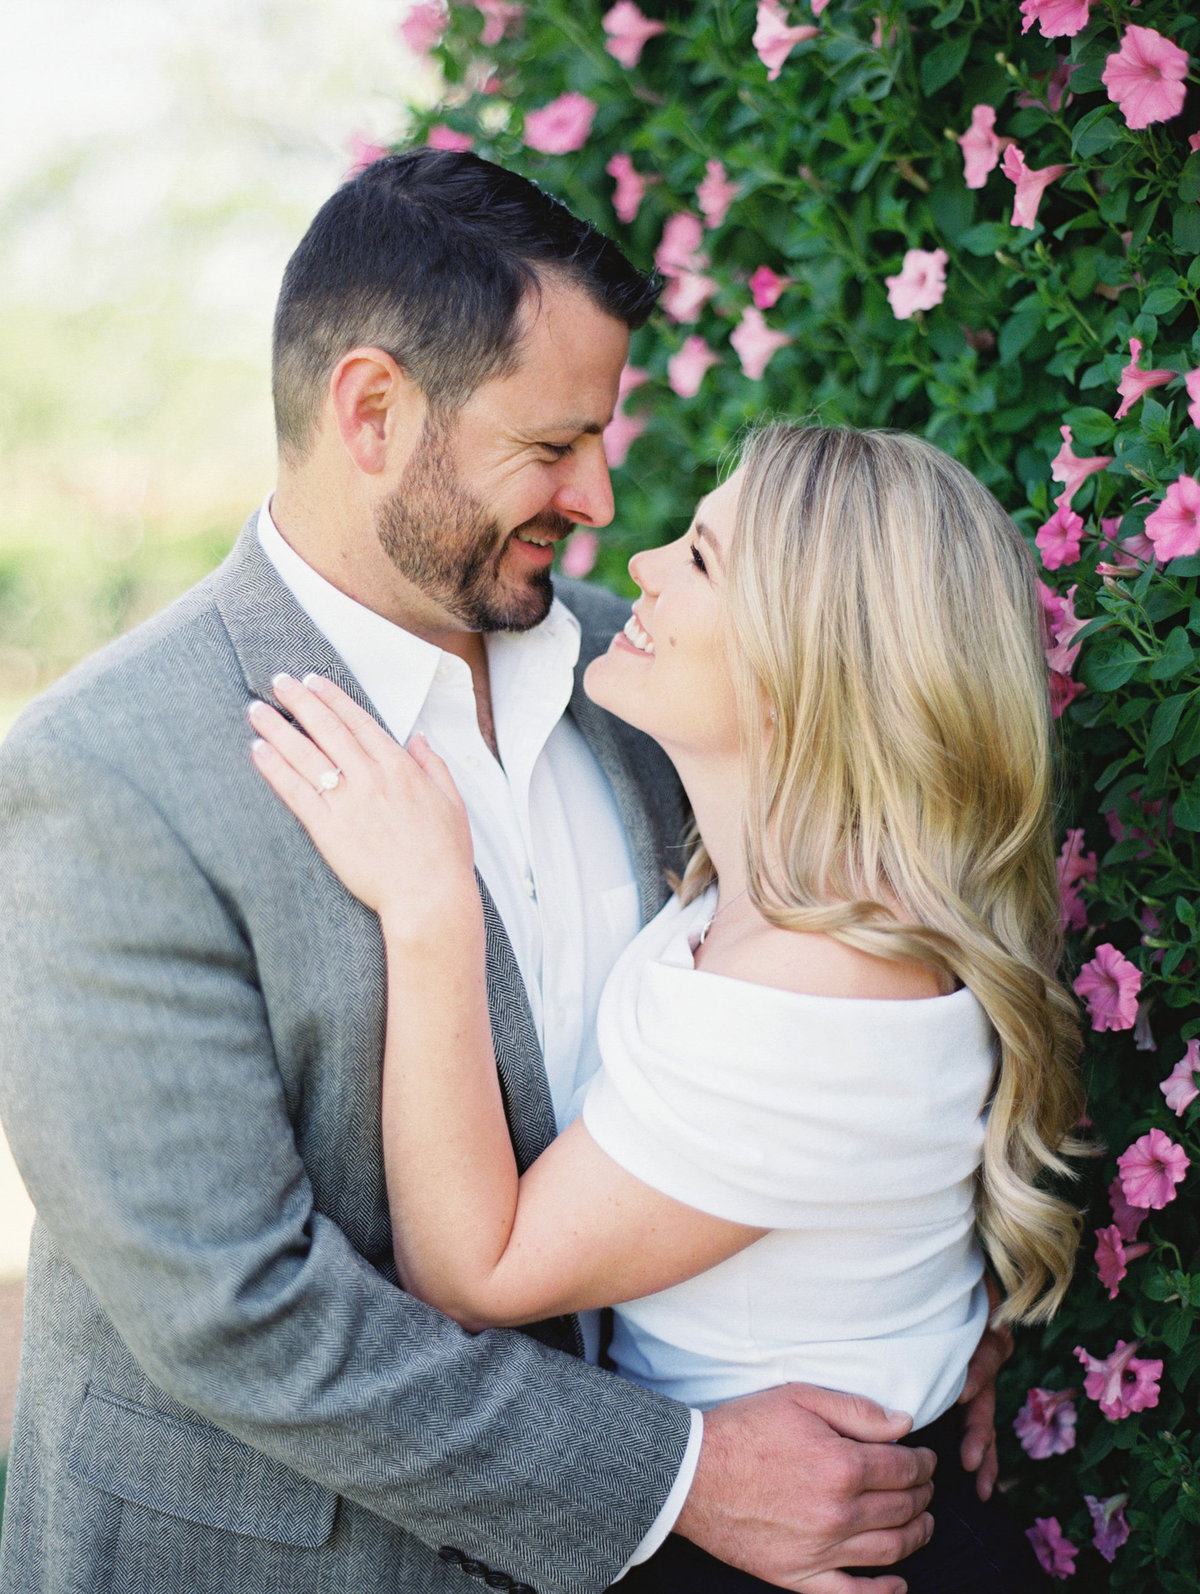 Courtney Hanson Photography - Dallas Spring Engagement Photos-005-2